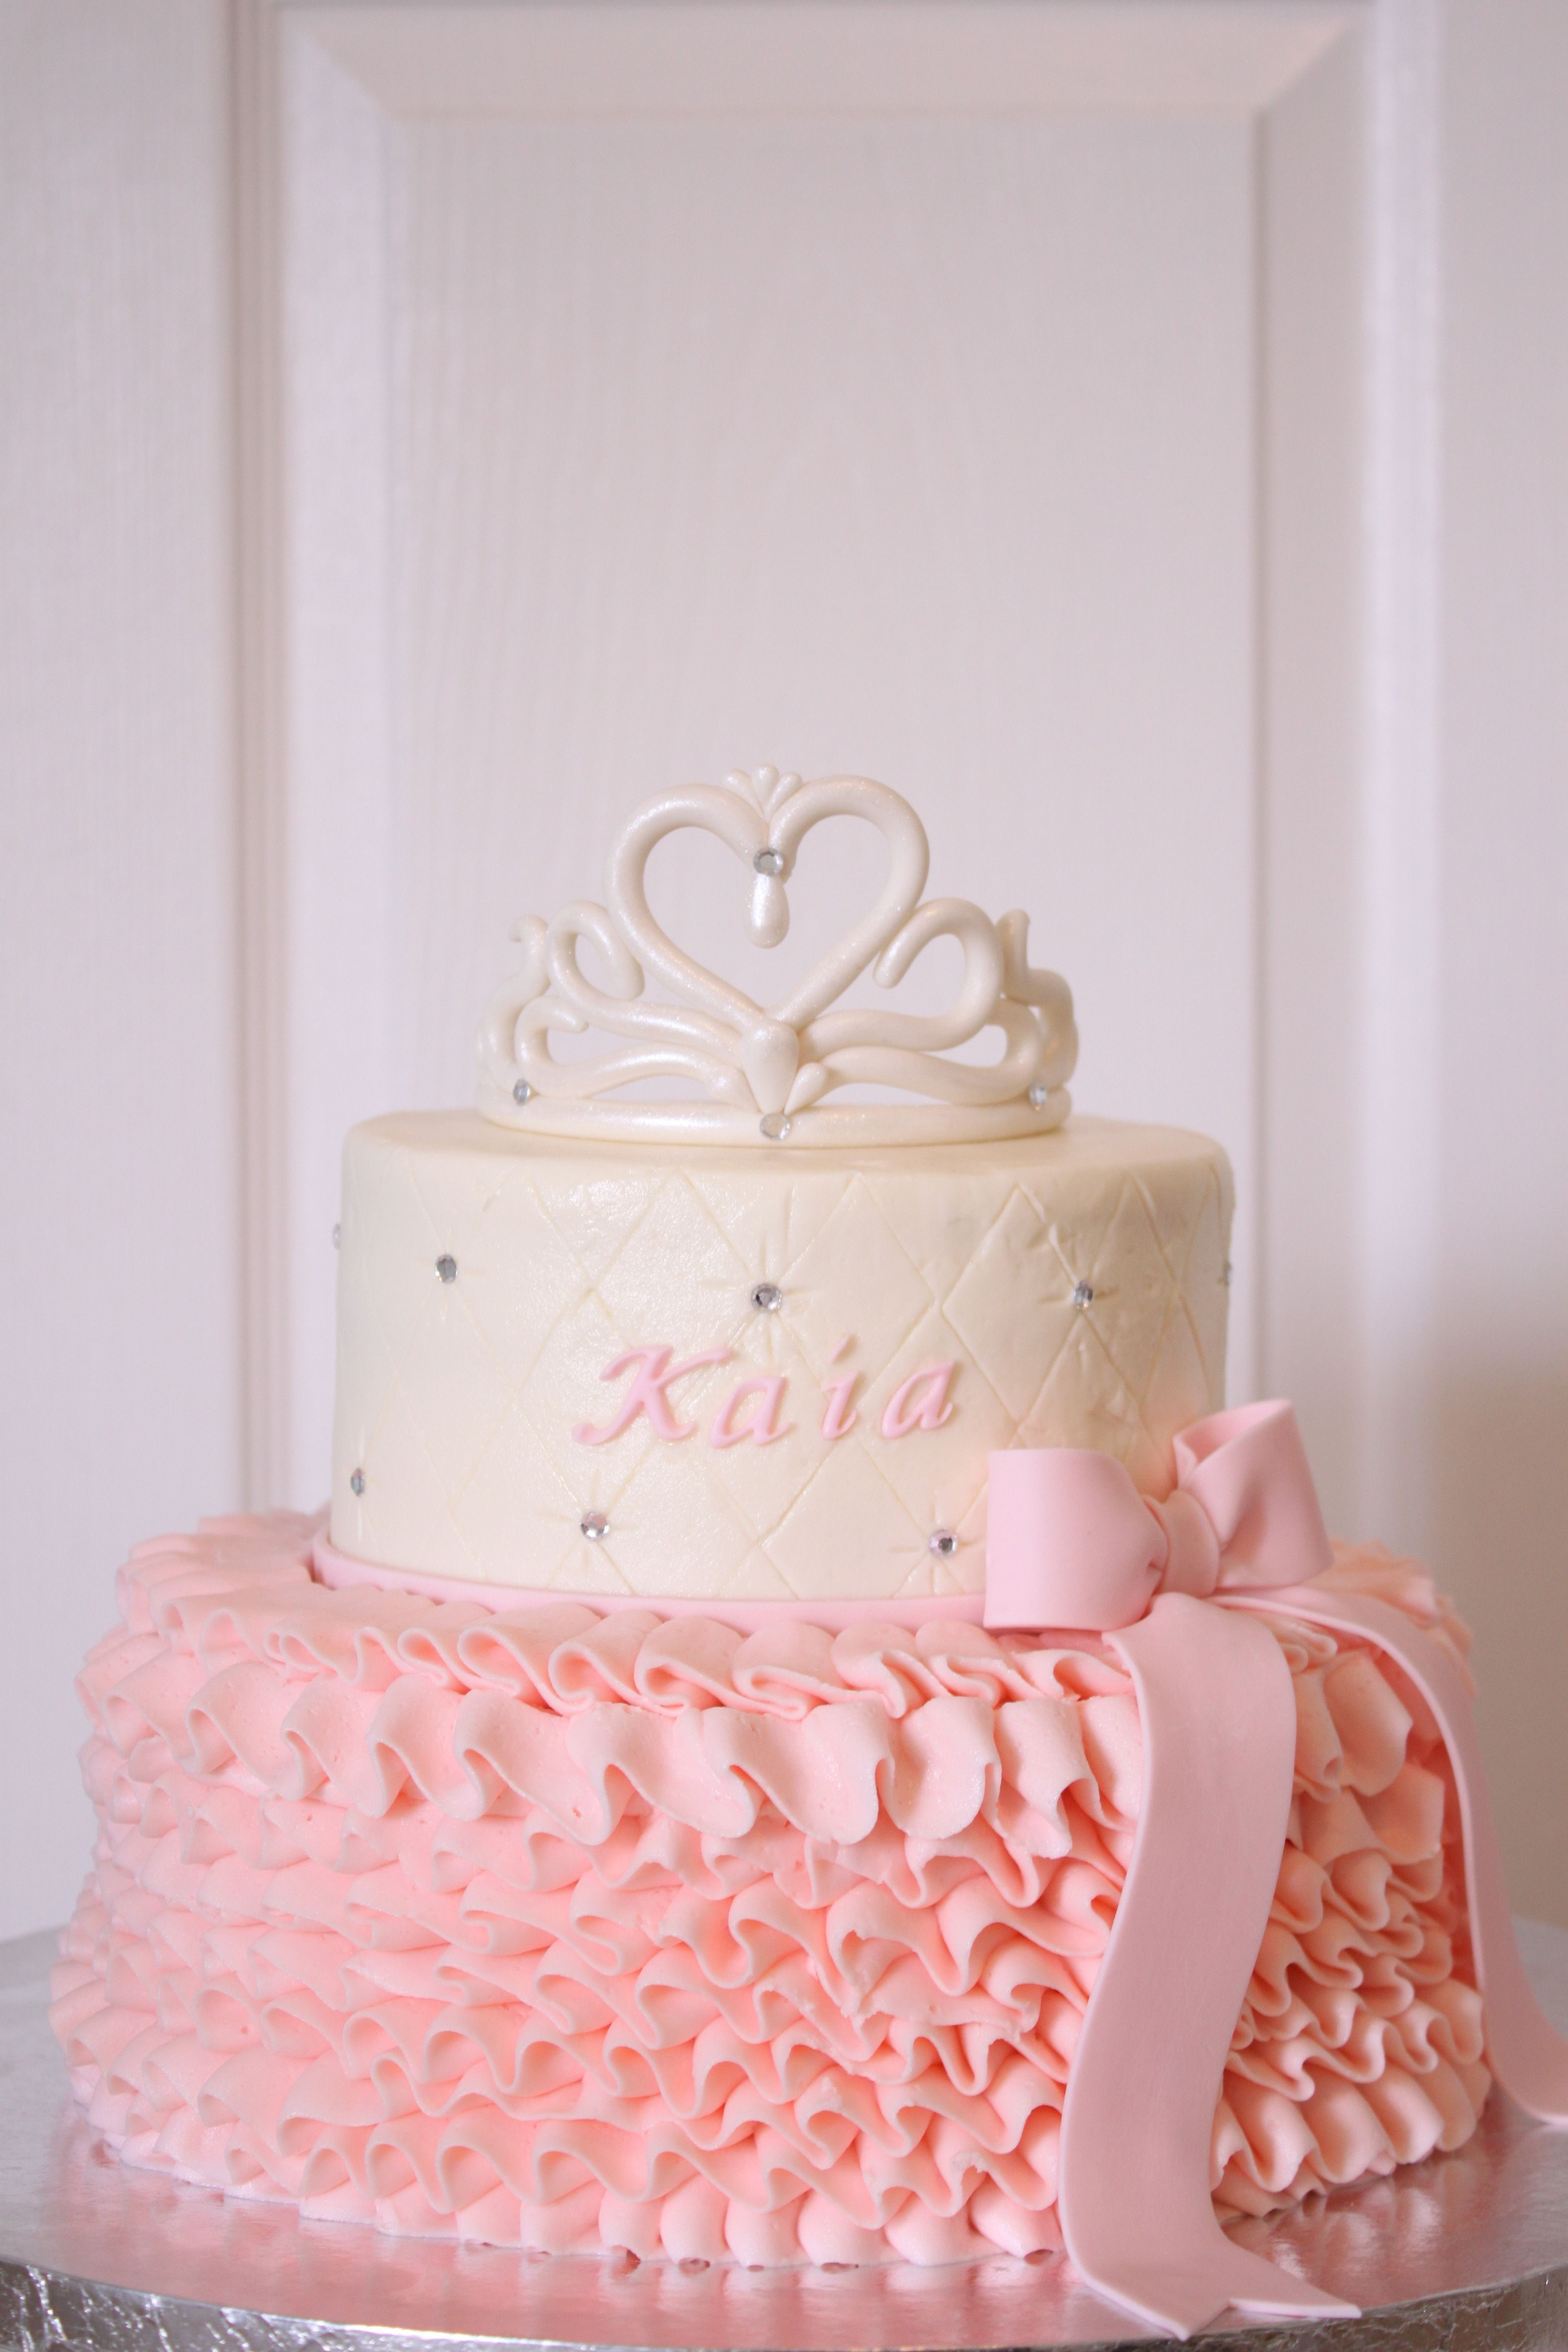 Princess Cake Ideas For Baby Shower : tiara and ruffles baby shower cake Decorated cakes and ...